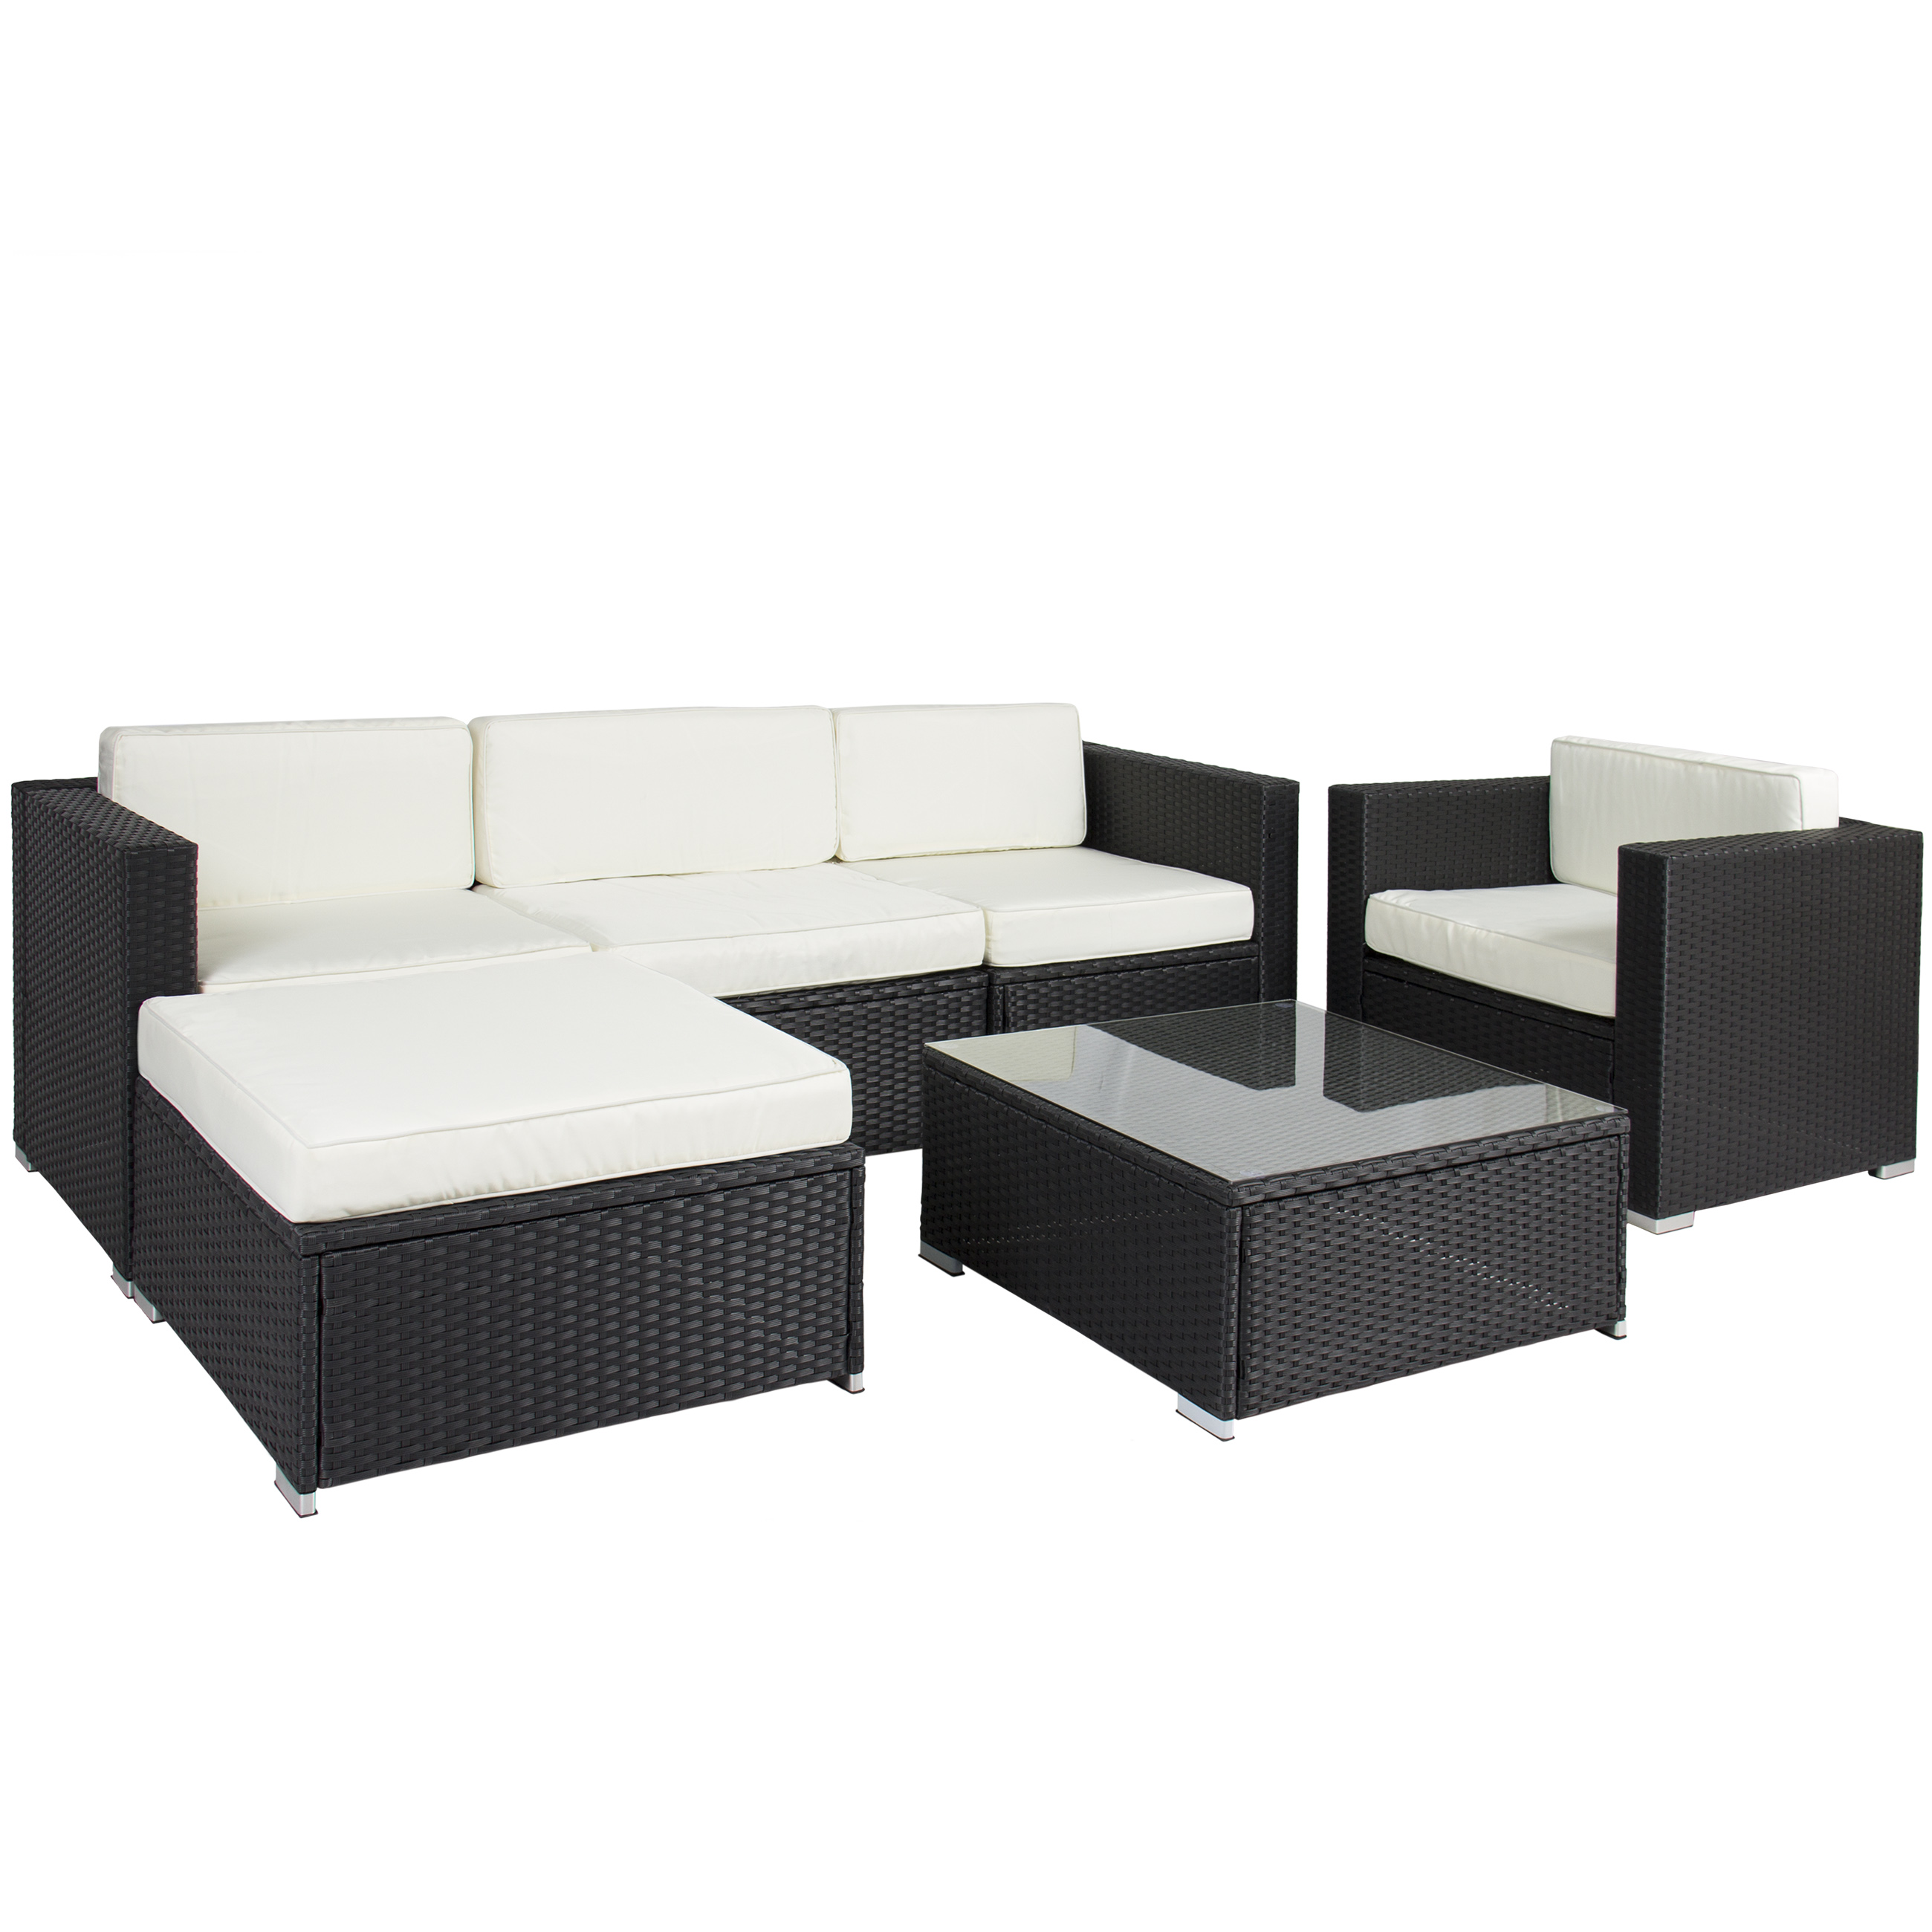 Best Choice Products 6pc Outdoor Patio Garden Furniture Wicker